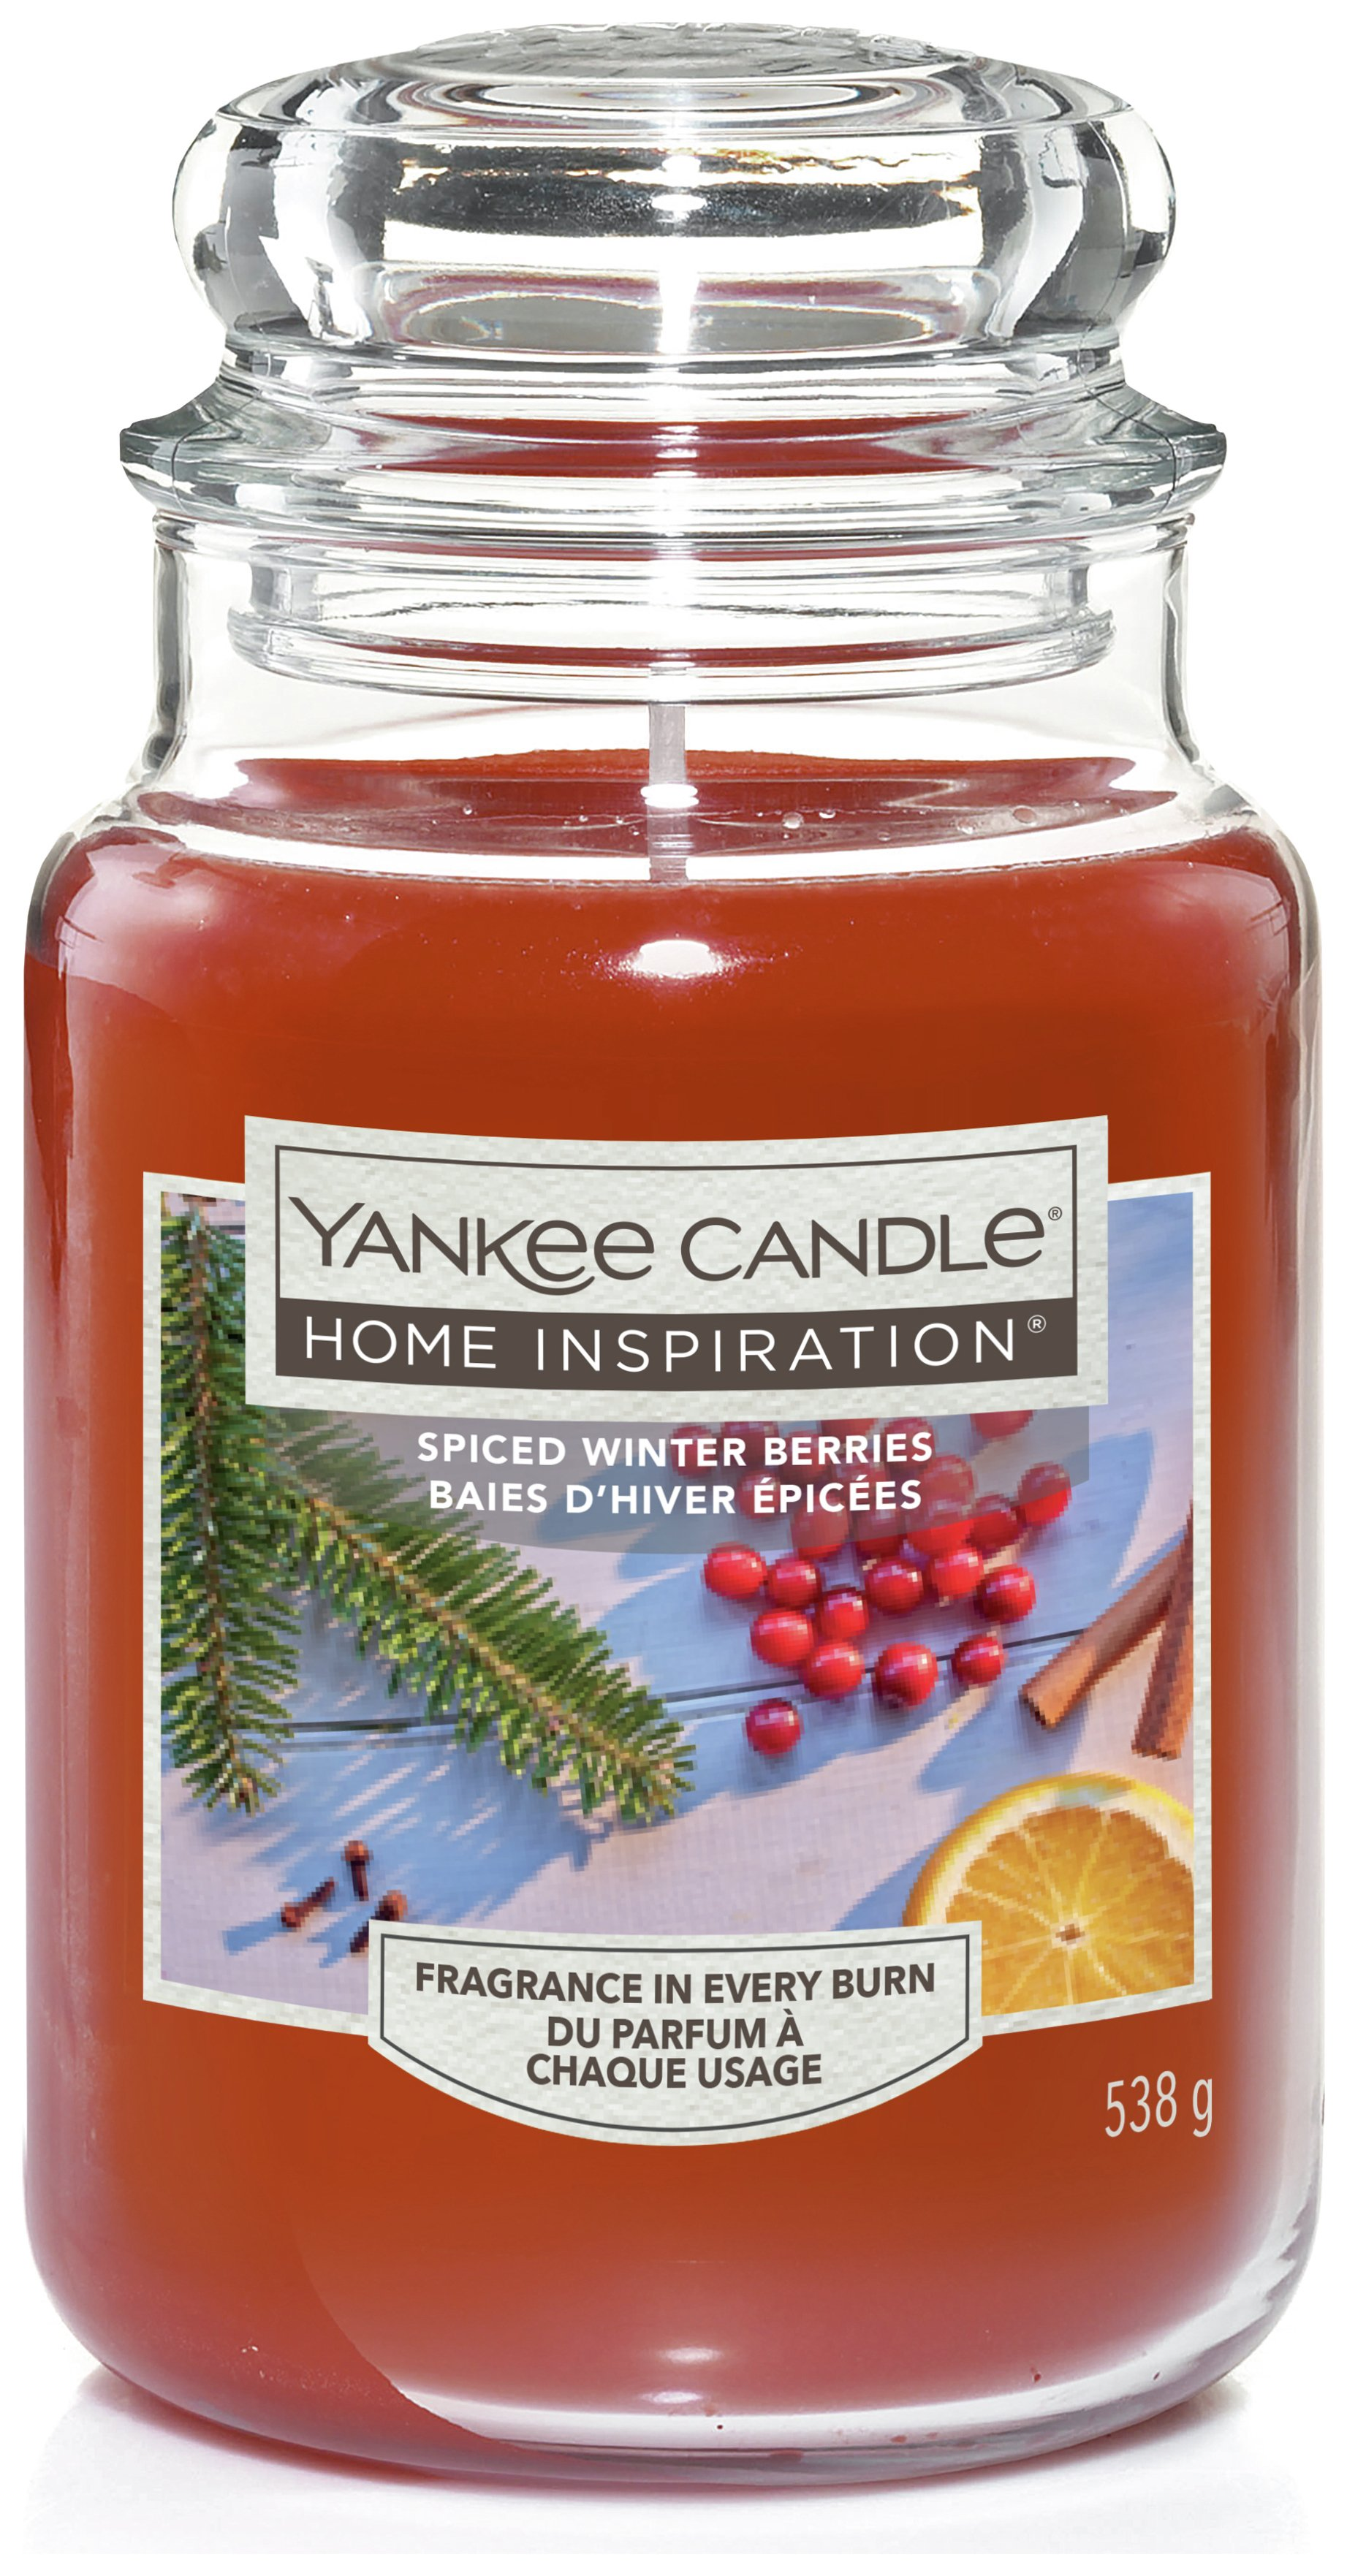 Image of Yankee Candle Large Jar - Spiced Winter Berries